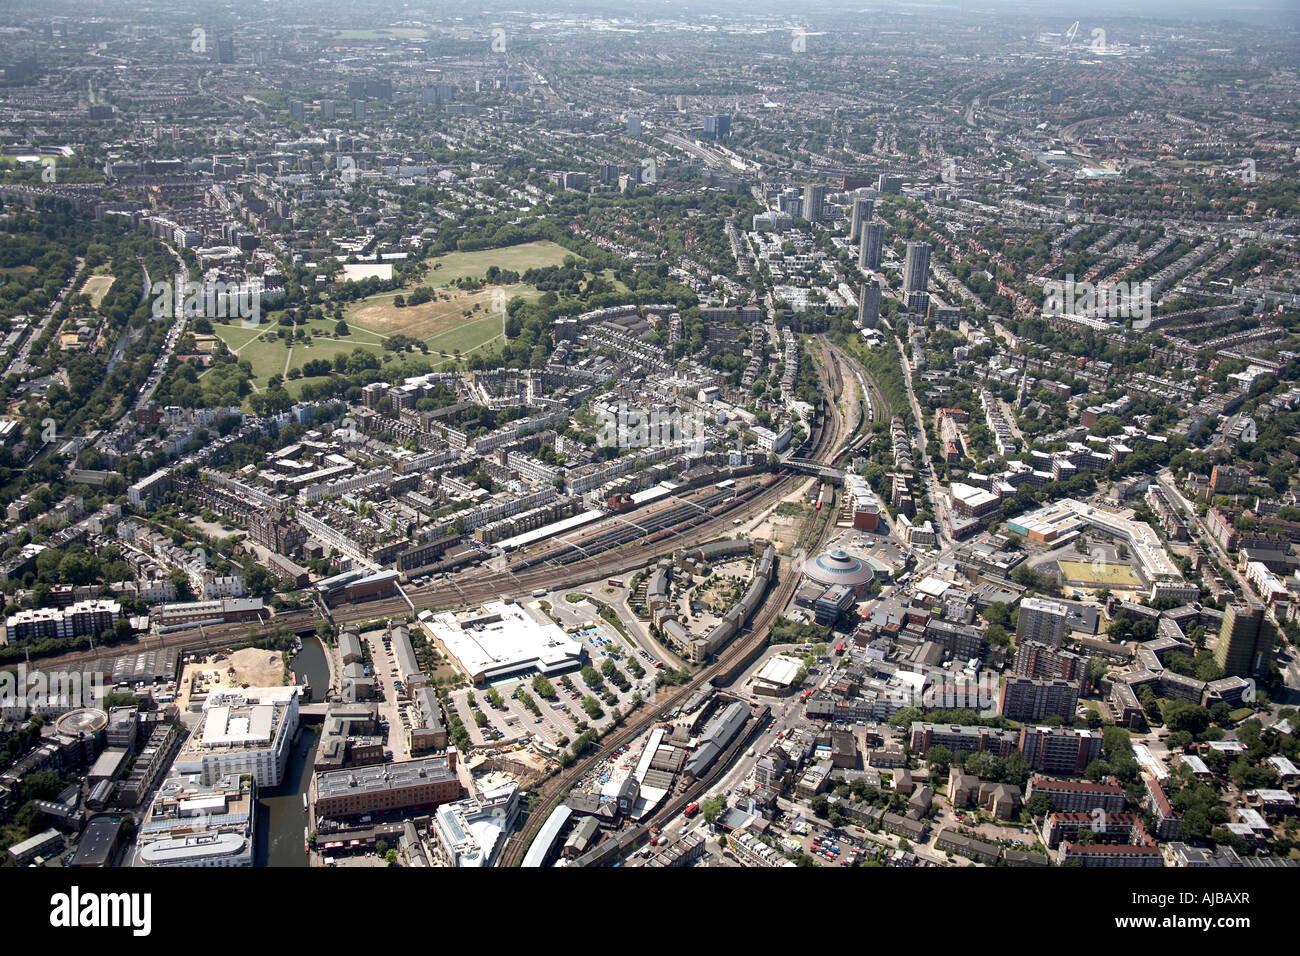 Aerial view south west of Chalk Farm Road The Roundhouse Theatre suburban housing and Primrose Hill London NW1 England - Stock Image